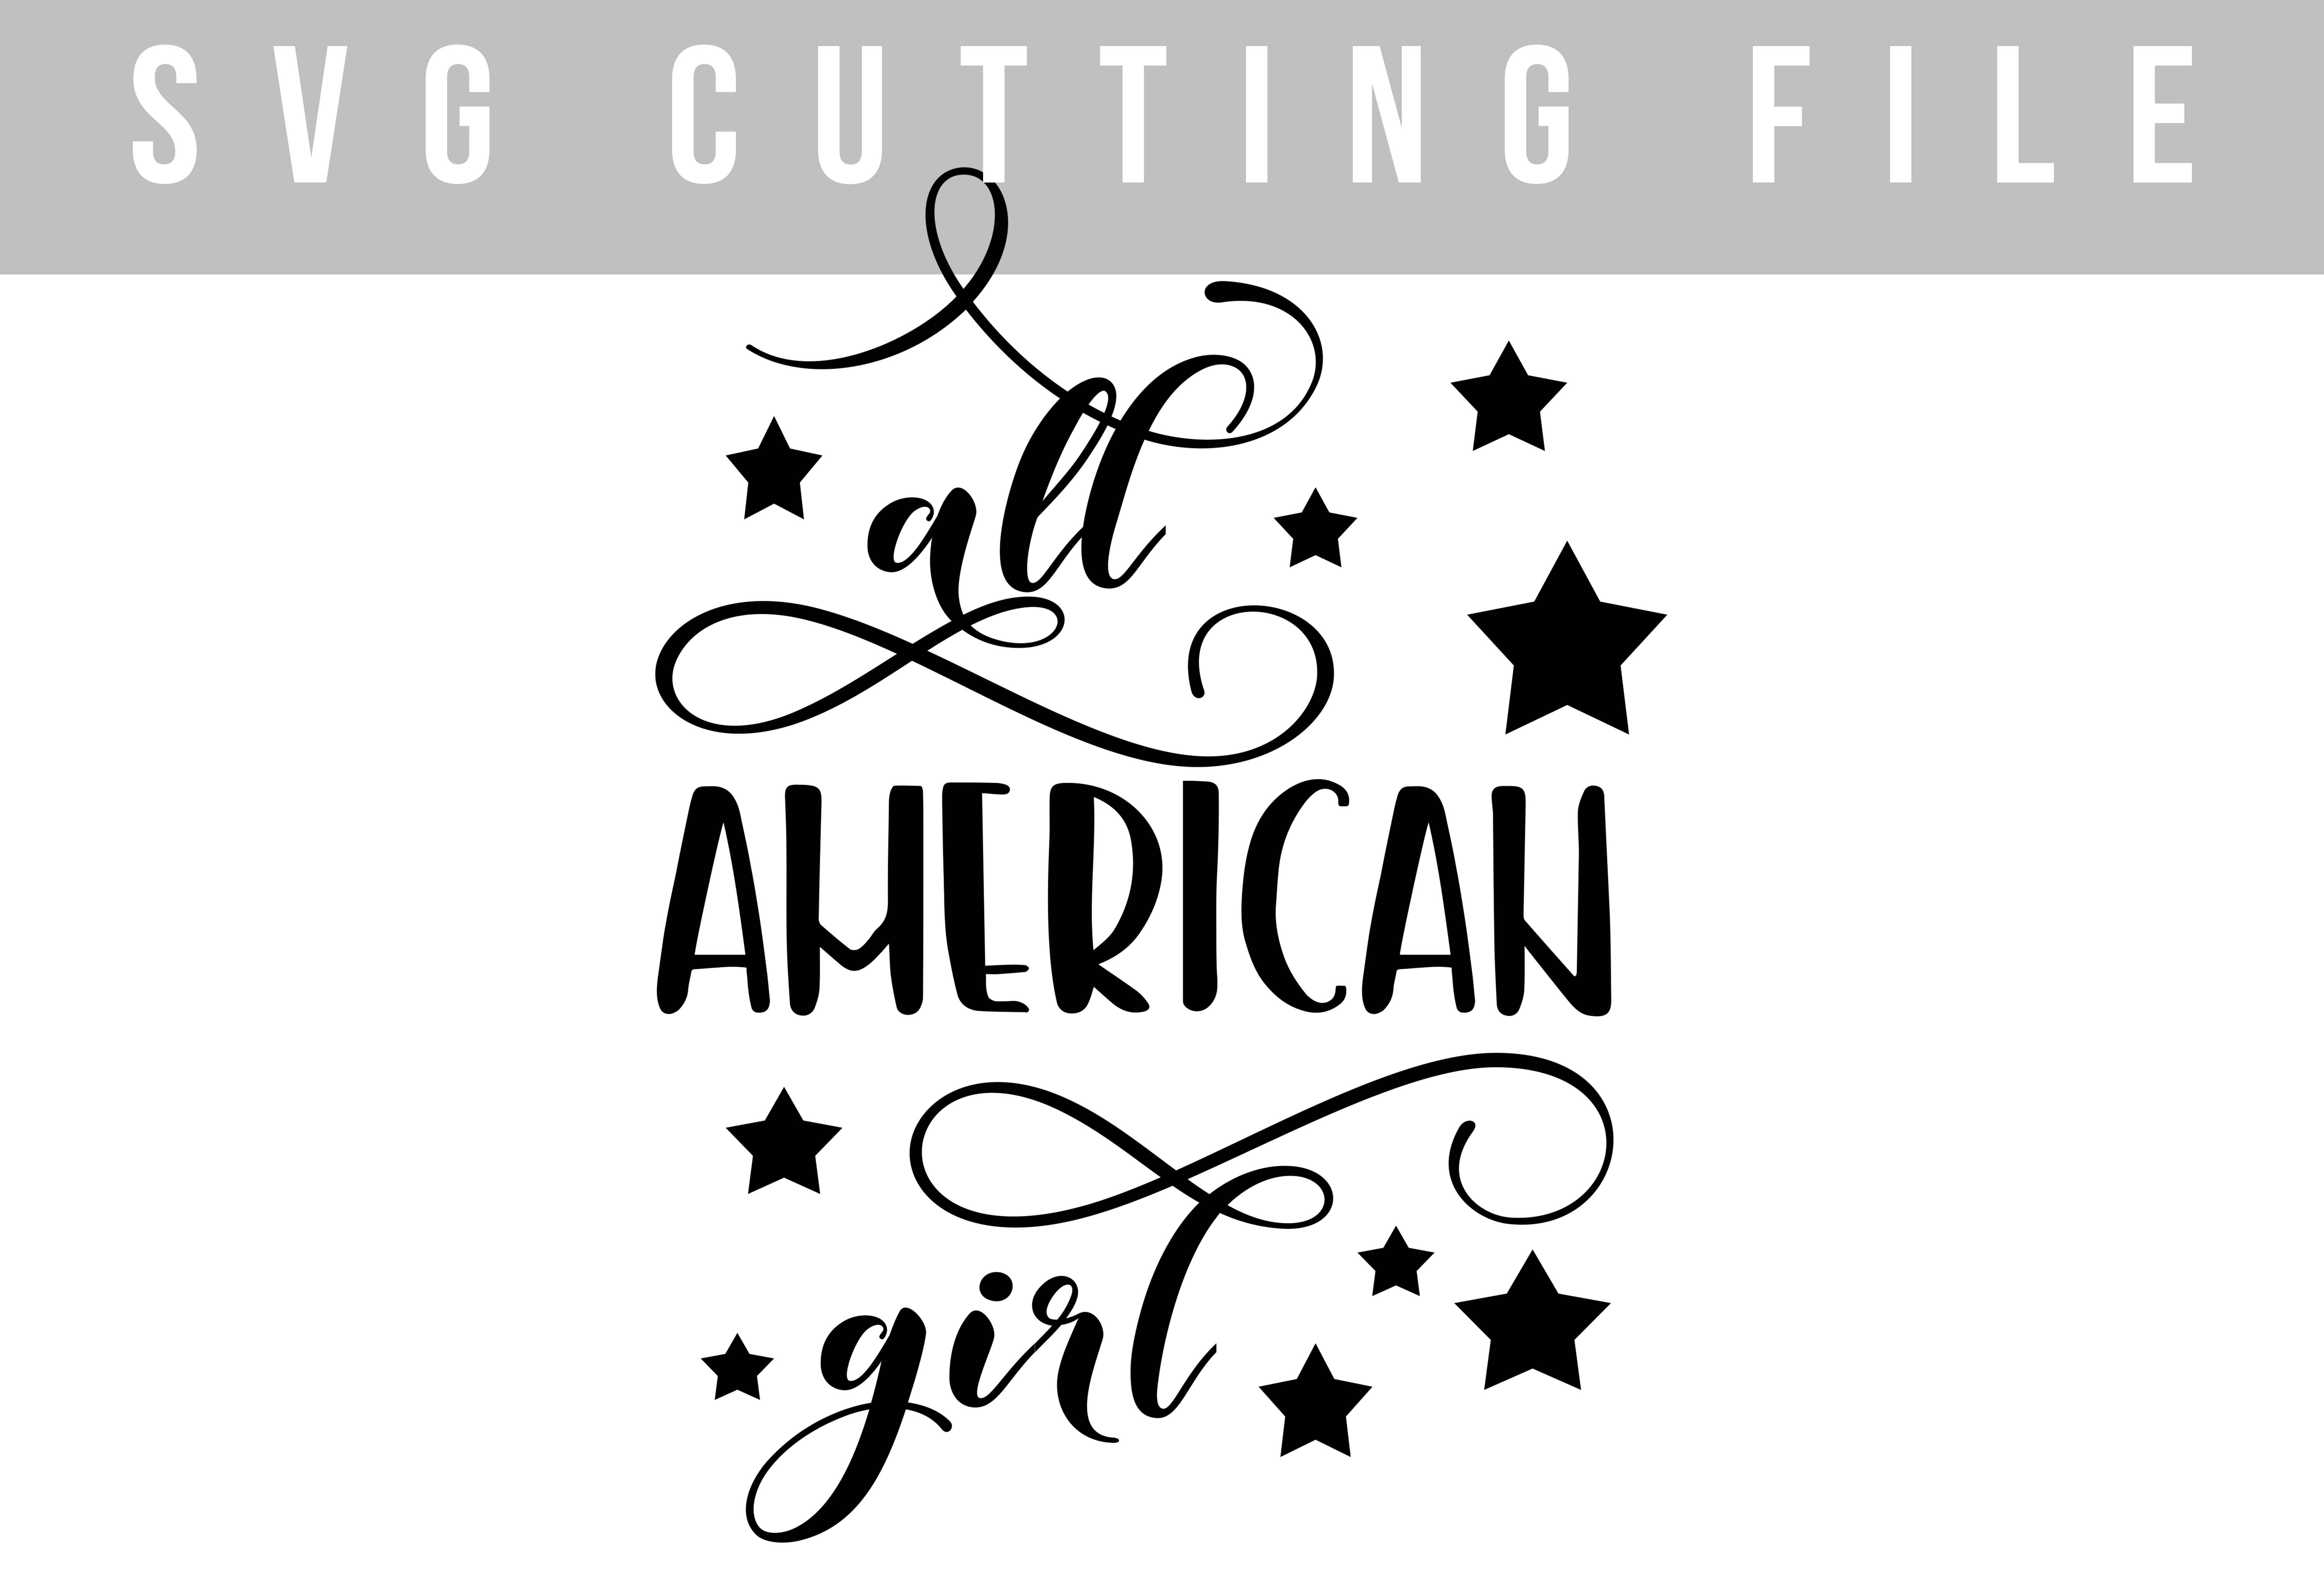 All American girl SVG PNG EPS DXF example image 5